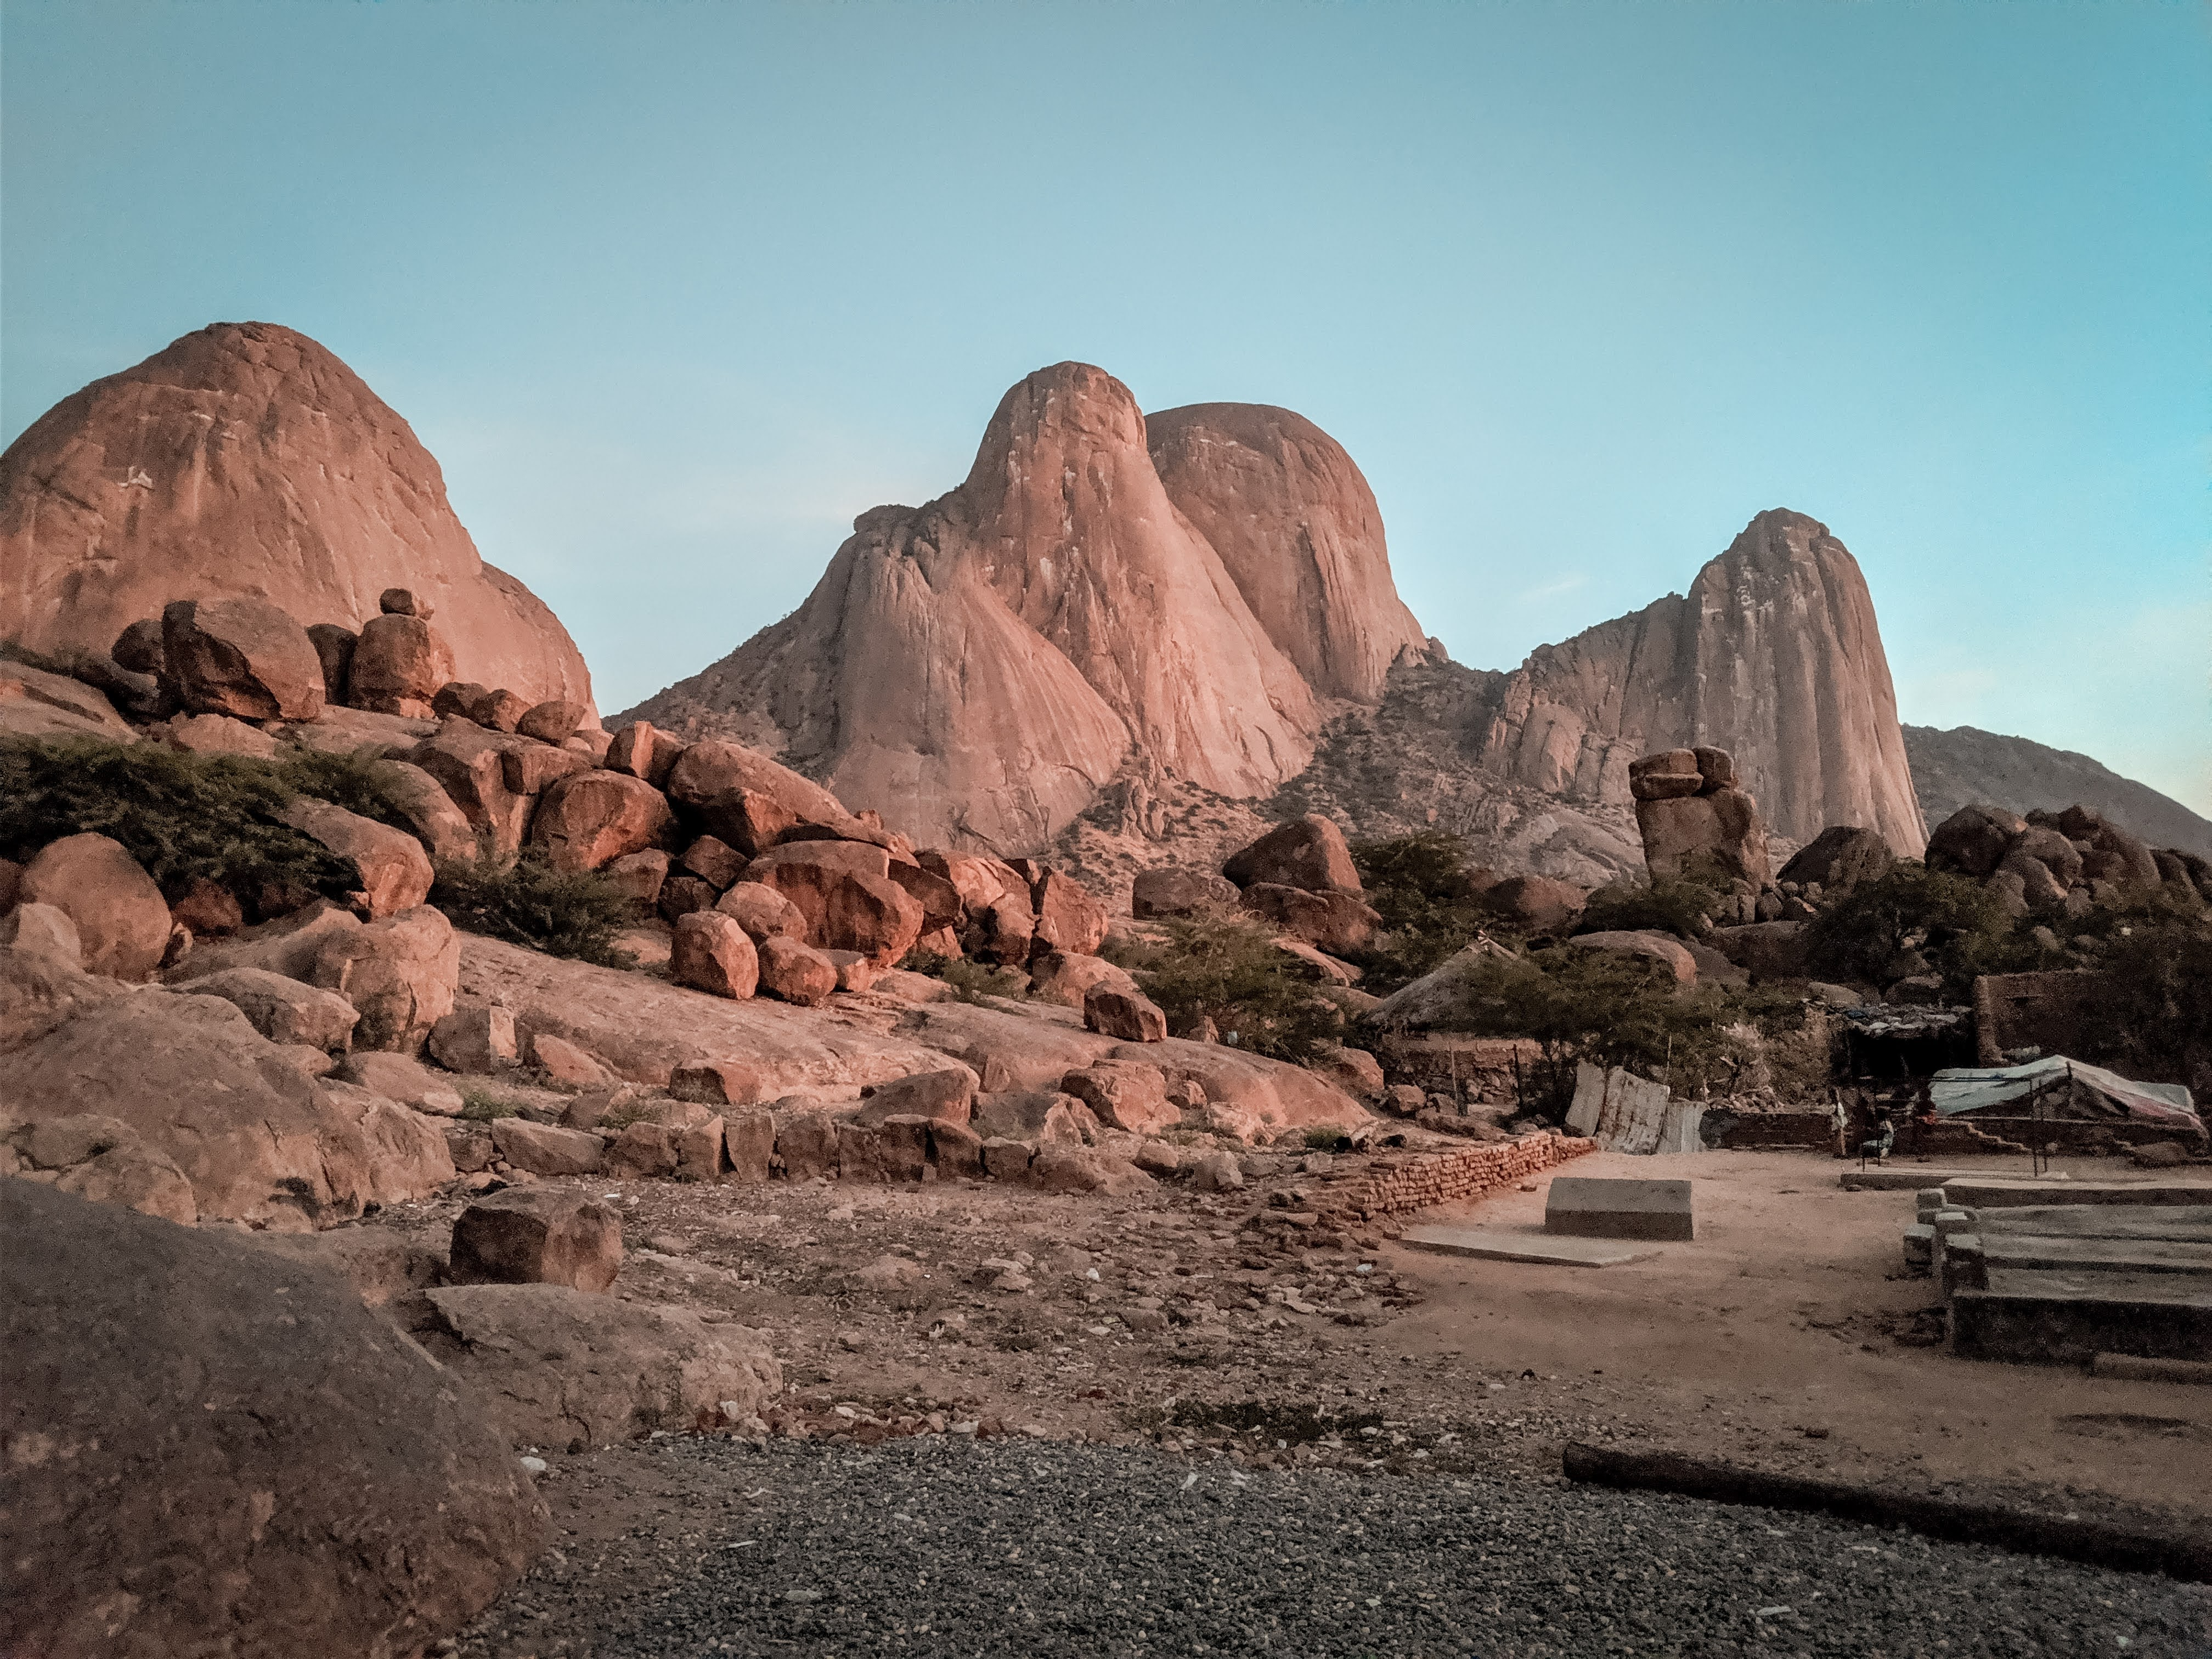 Taka mountains in Kassala, Sudan